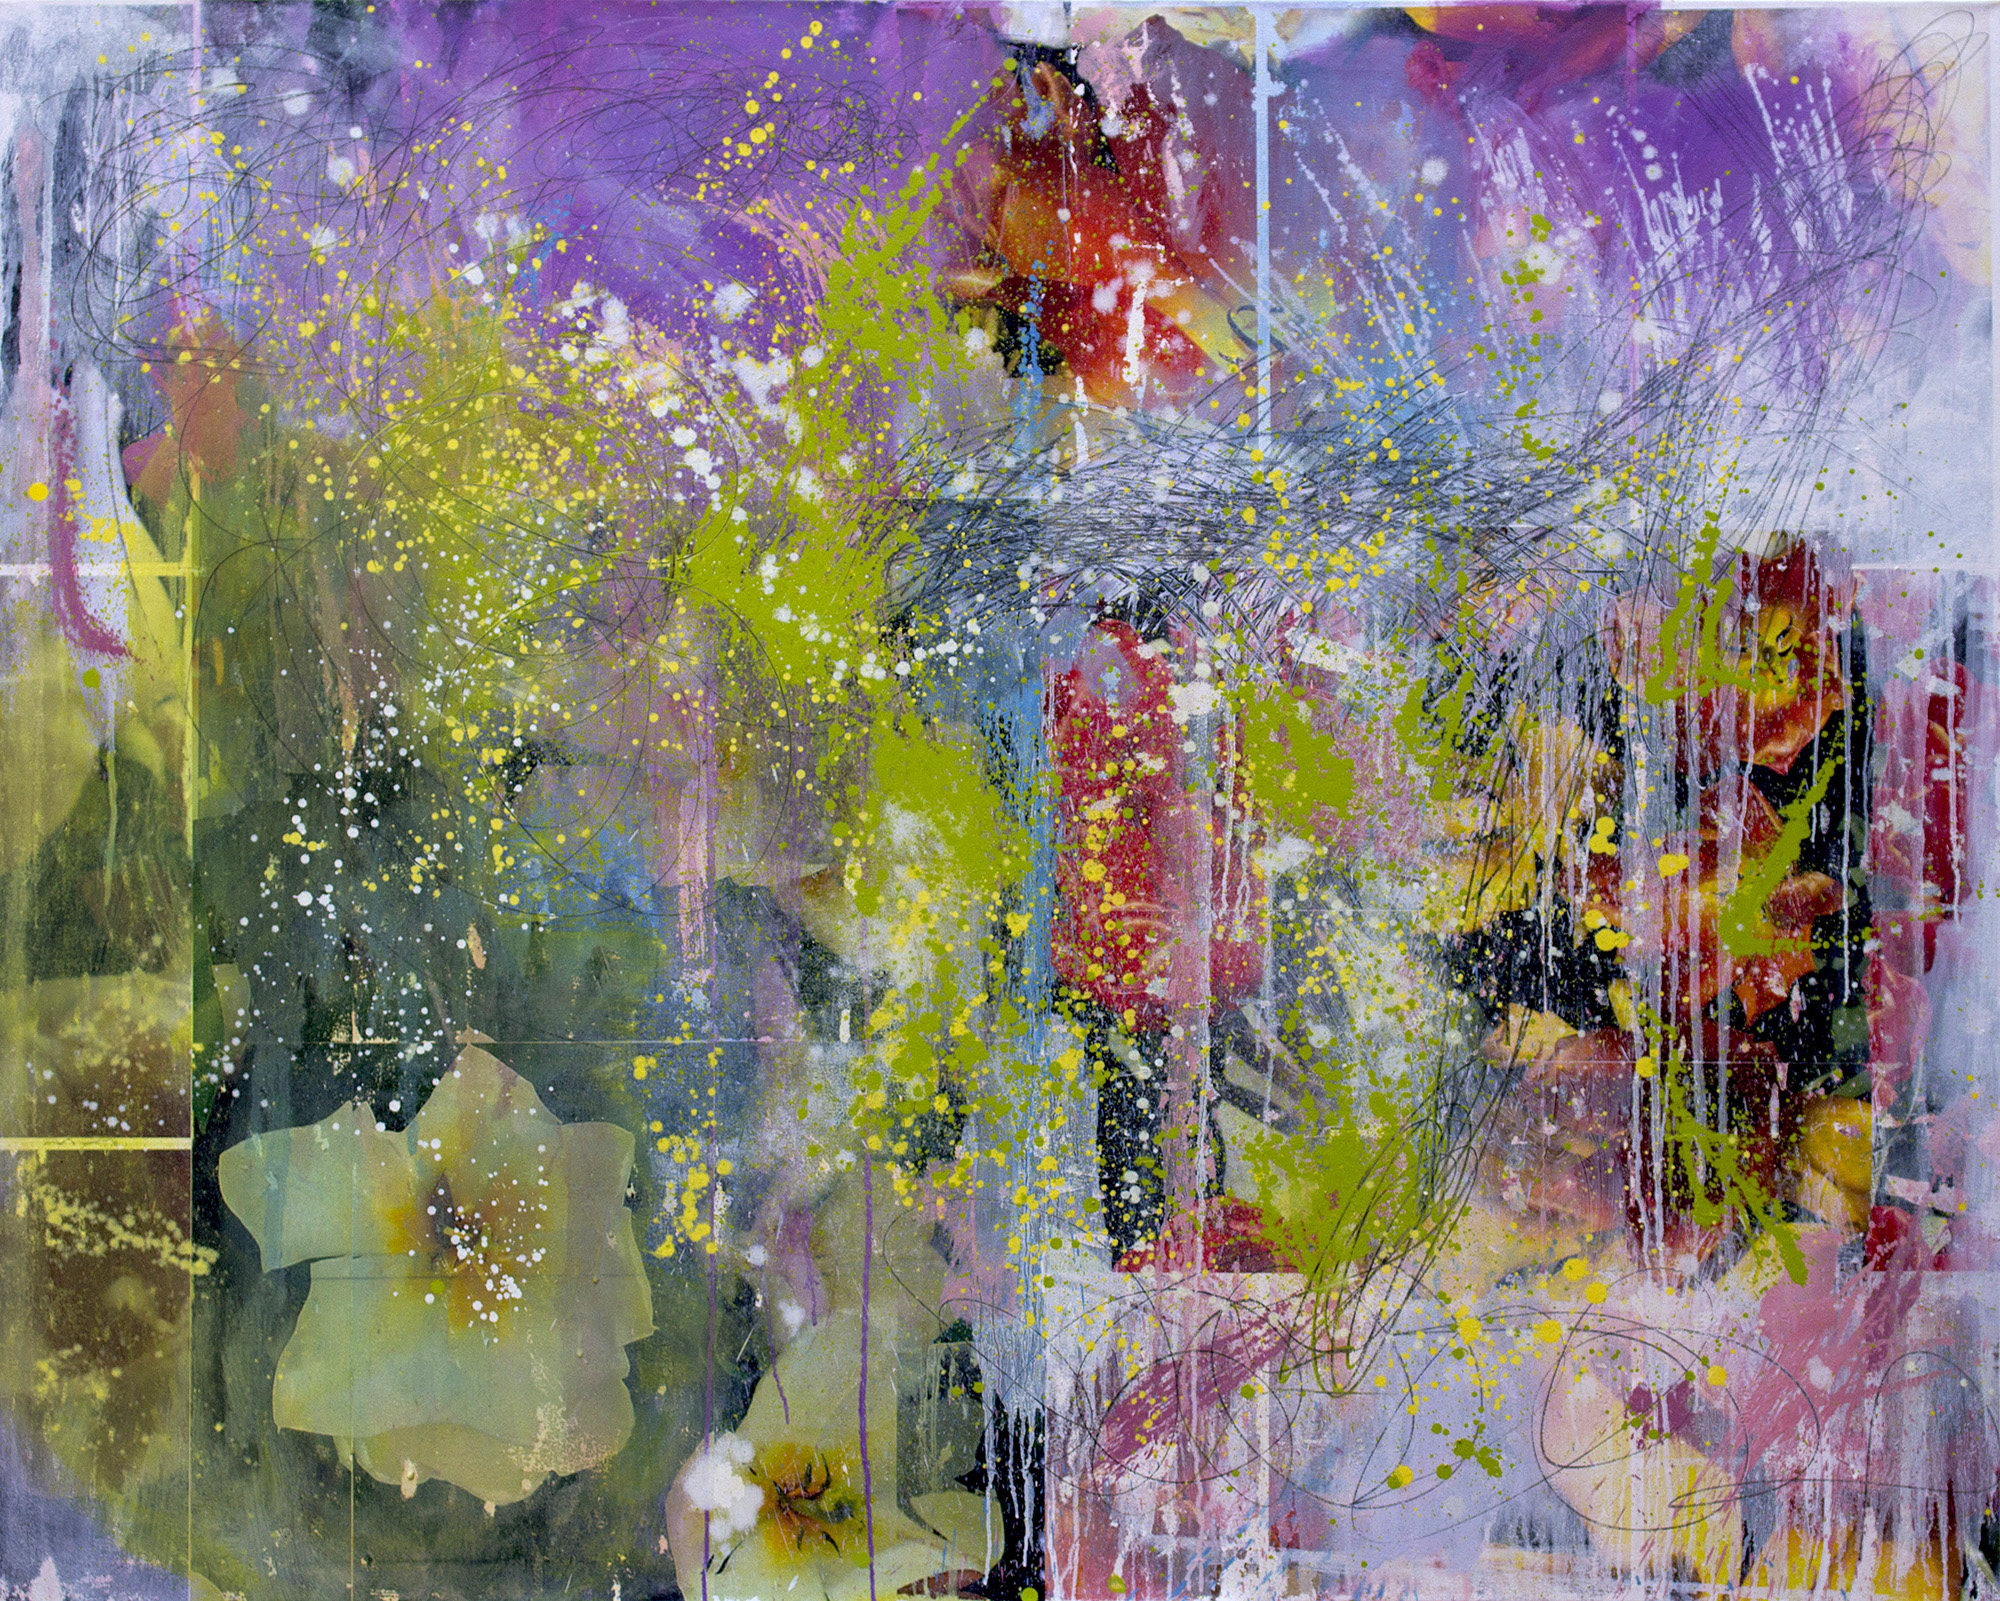 Paradise, 2015, mixed media on canvas, 48 x 60 in, SOLD